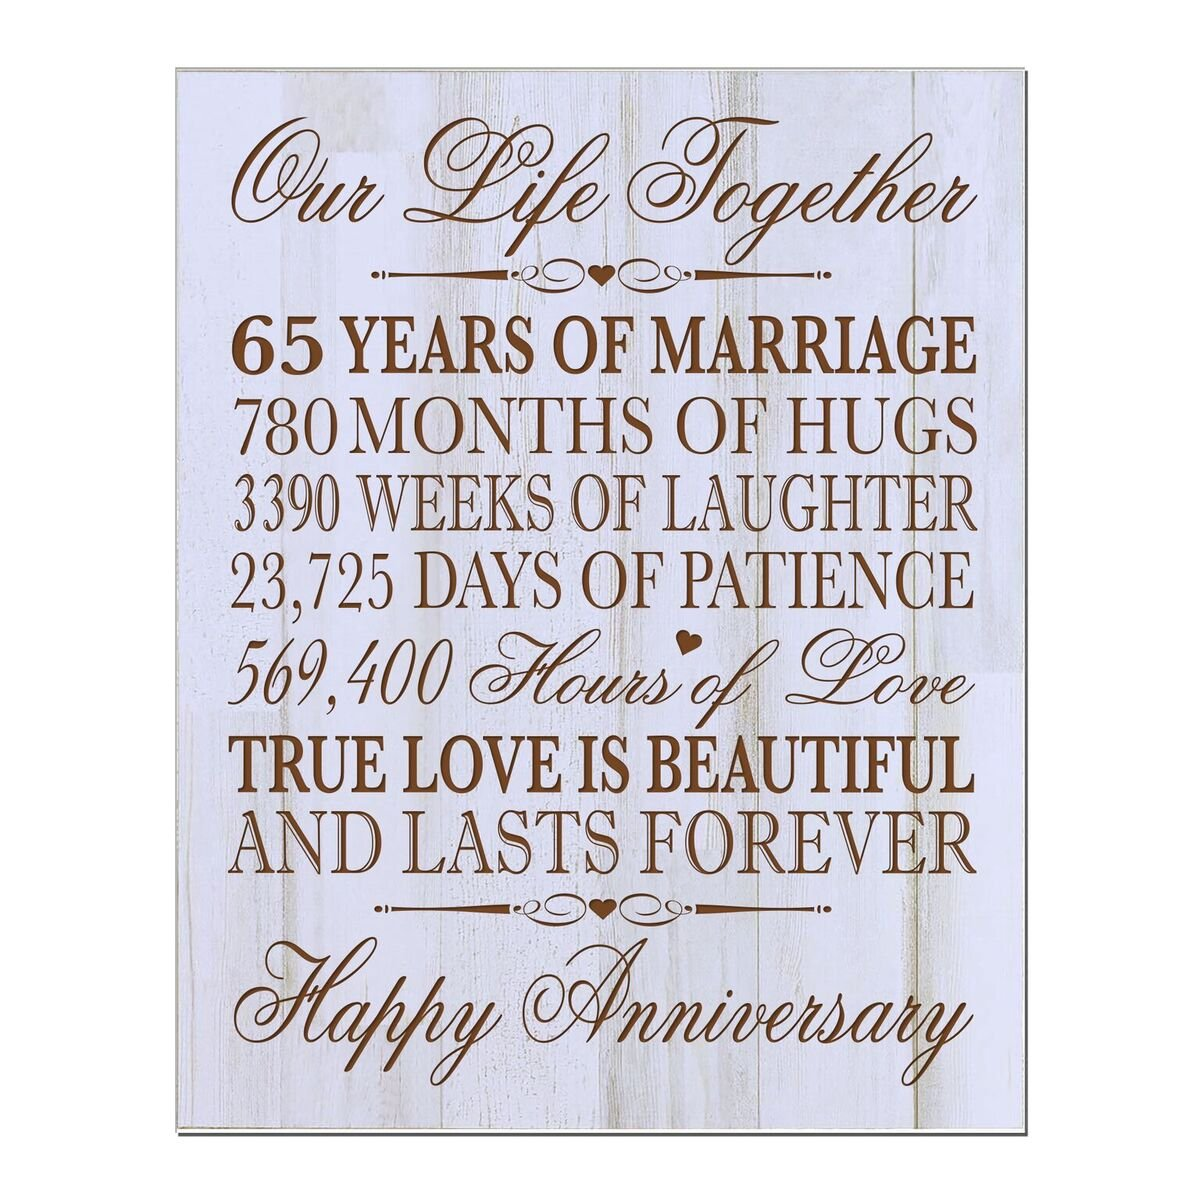 Personalized 65th Wedding Anniversary Wall Plaque Gifts for Couple parents, 65th Anniversary Gifts for Her,him Custom engraved 65th Wedding 12'' W X 15'' H Wall Plaque (Distressed White)